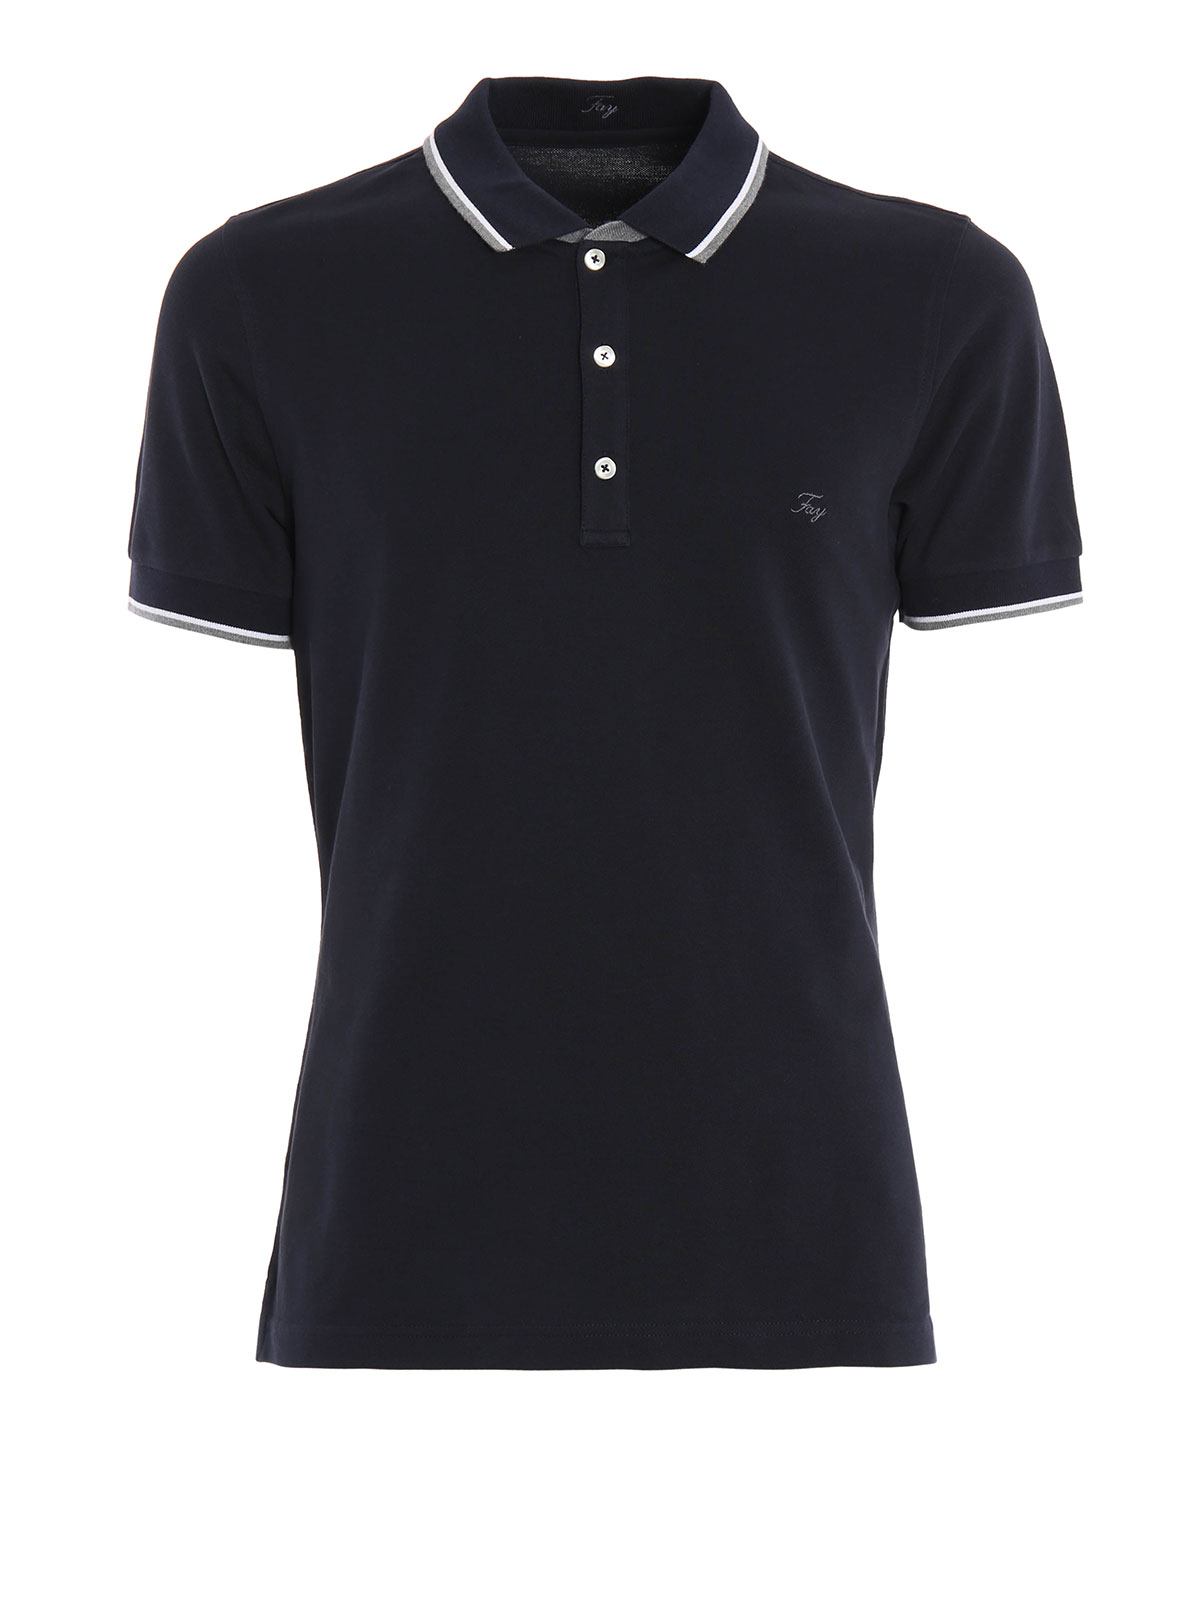 Stitched logo pique polo by fay polo shirts ikrix for Polo shirts with logos